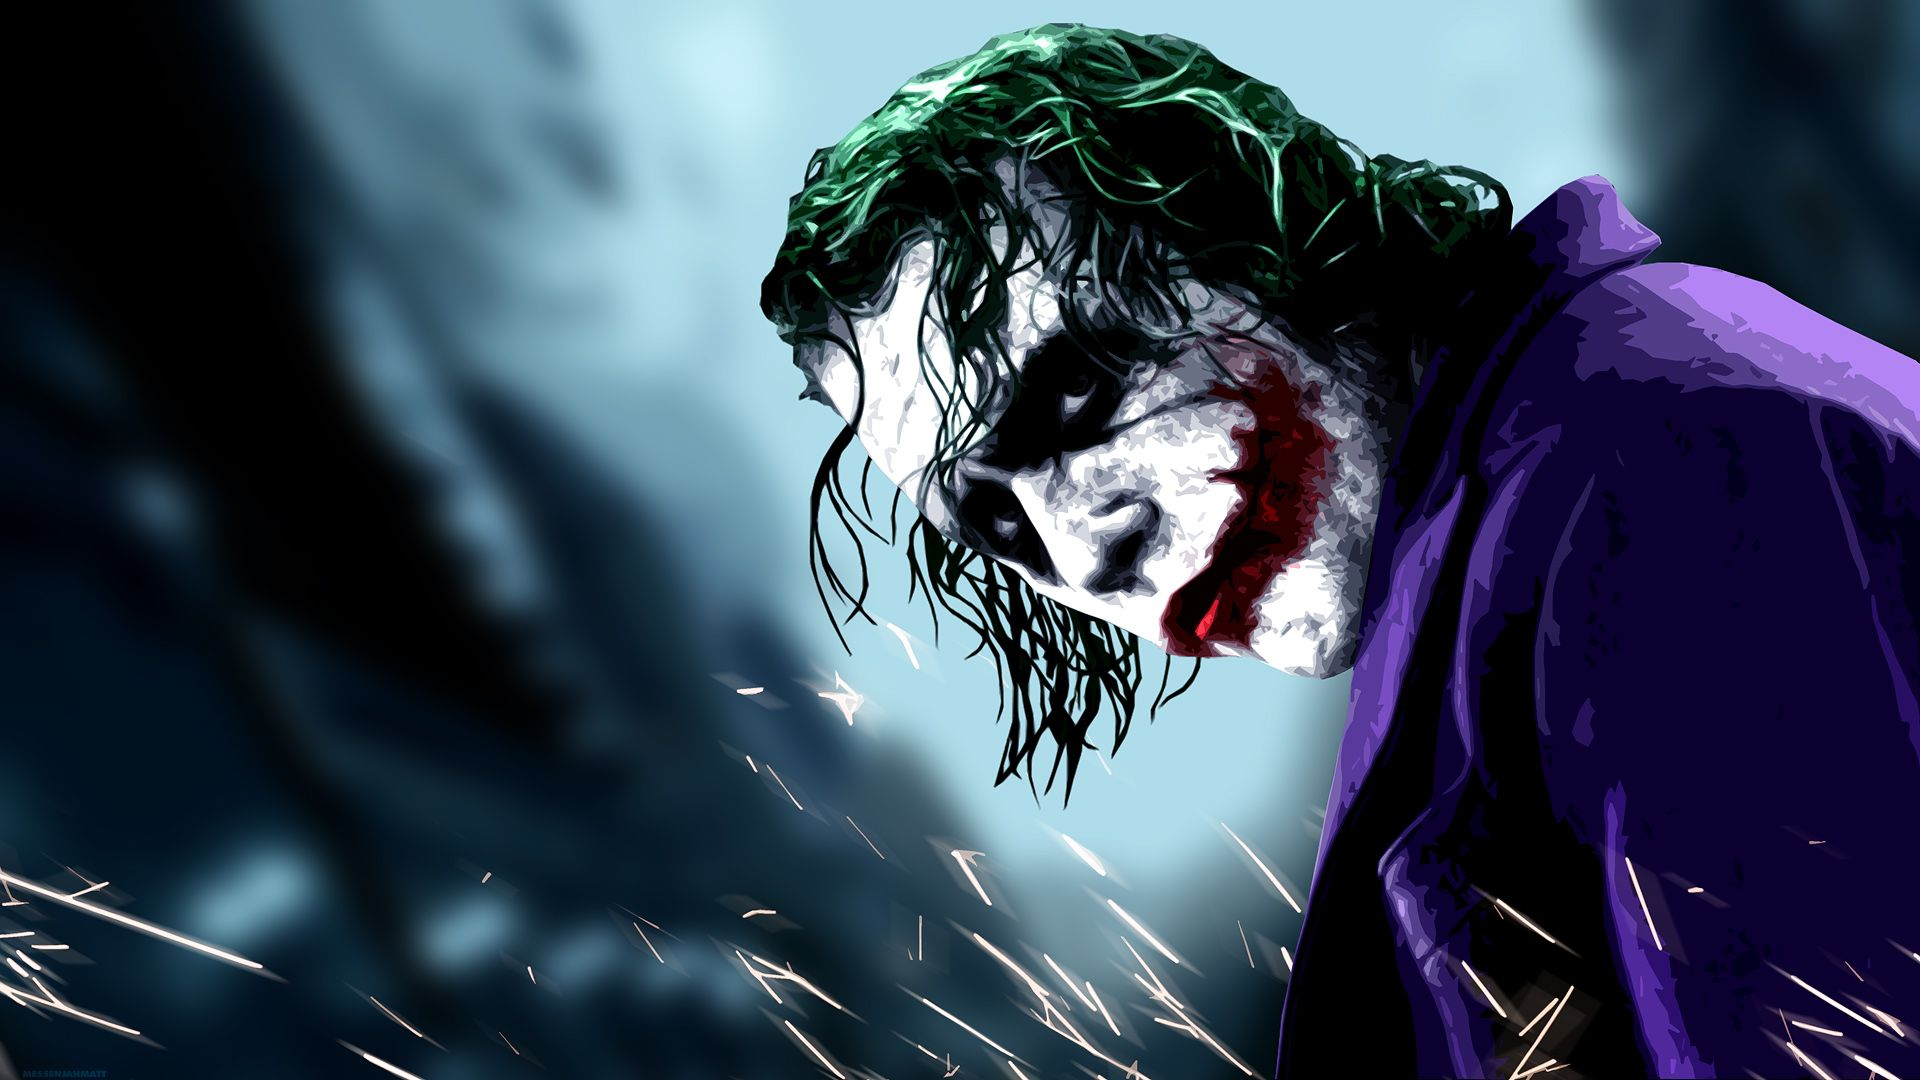 Joker Desktop Wallpapers Top Free Joker Desktop Backgrounds Wallpaperaccess